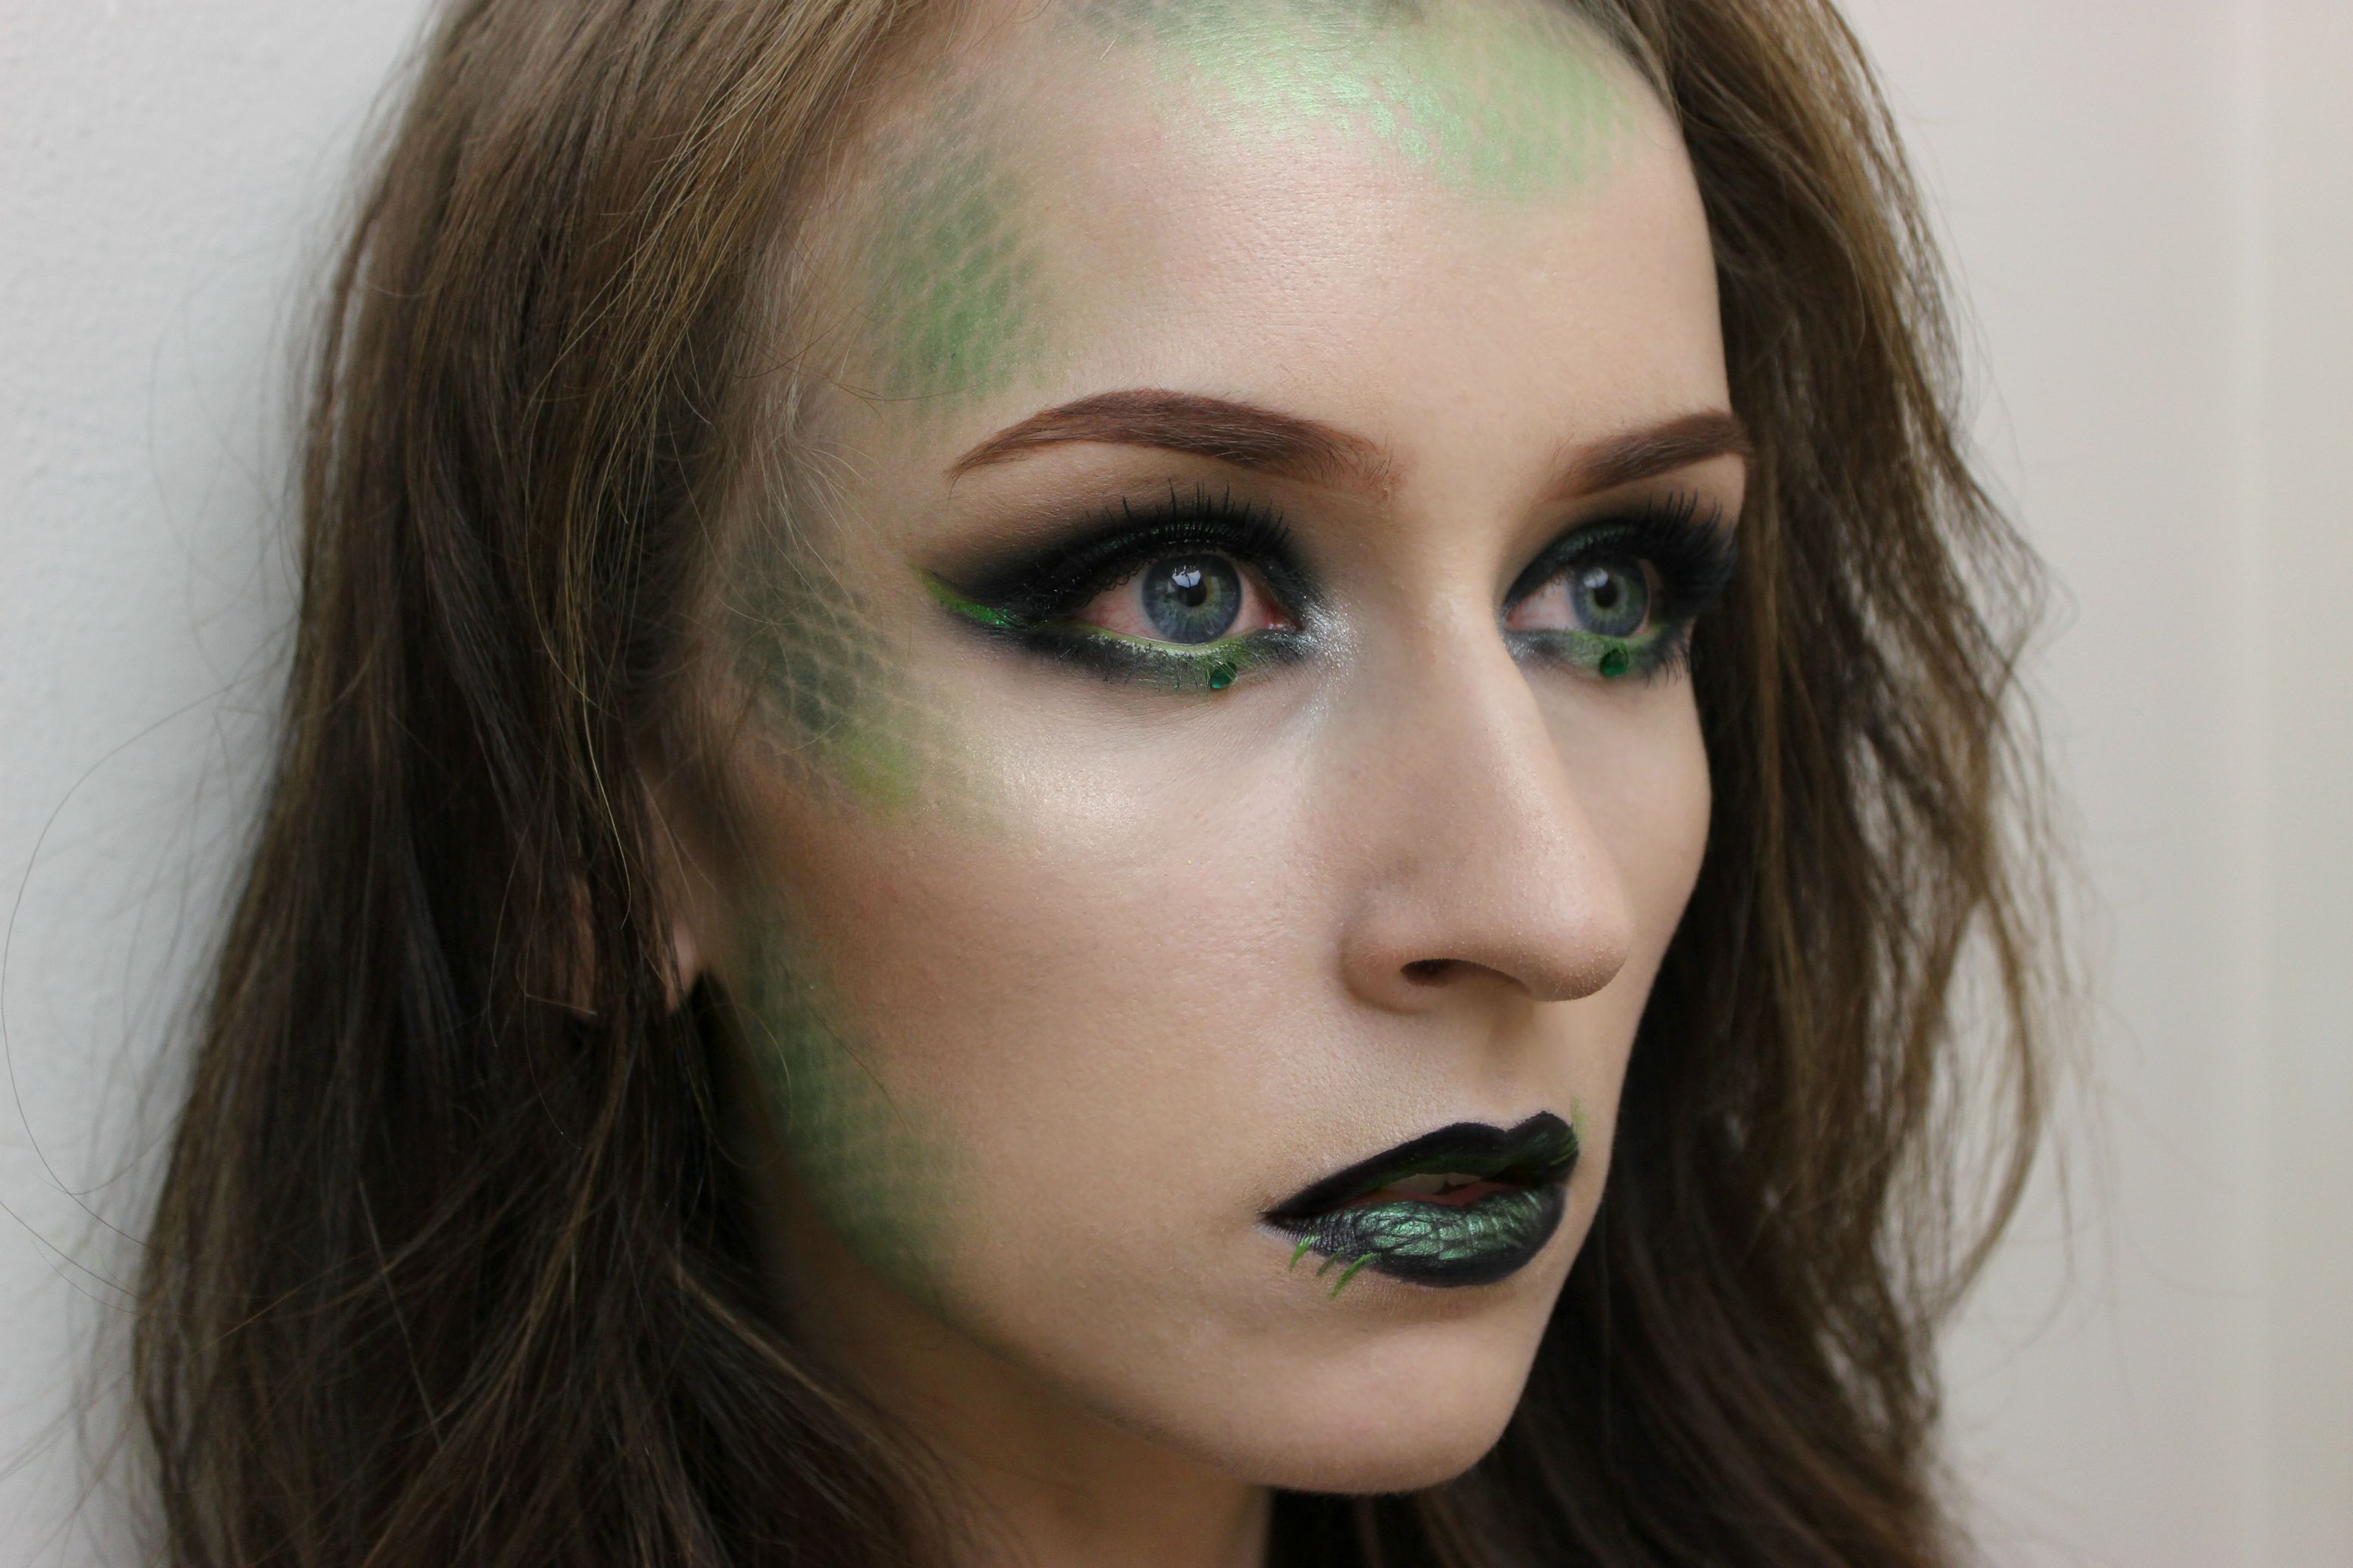 The eye and lip makeup is not neccesary. The scales are pretty good!